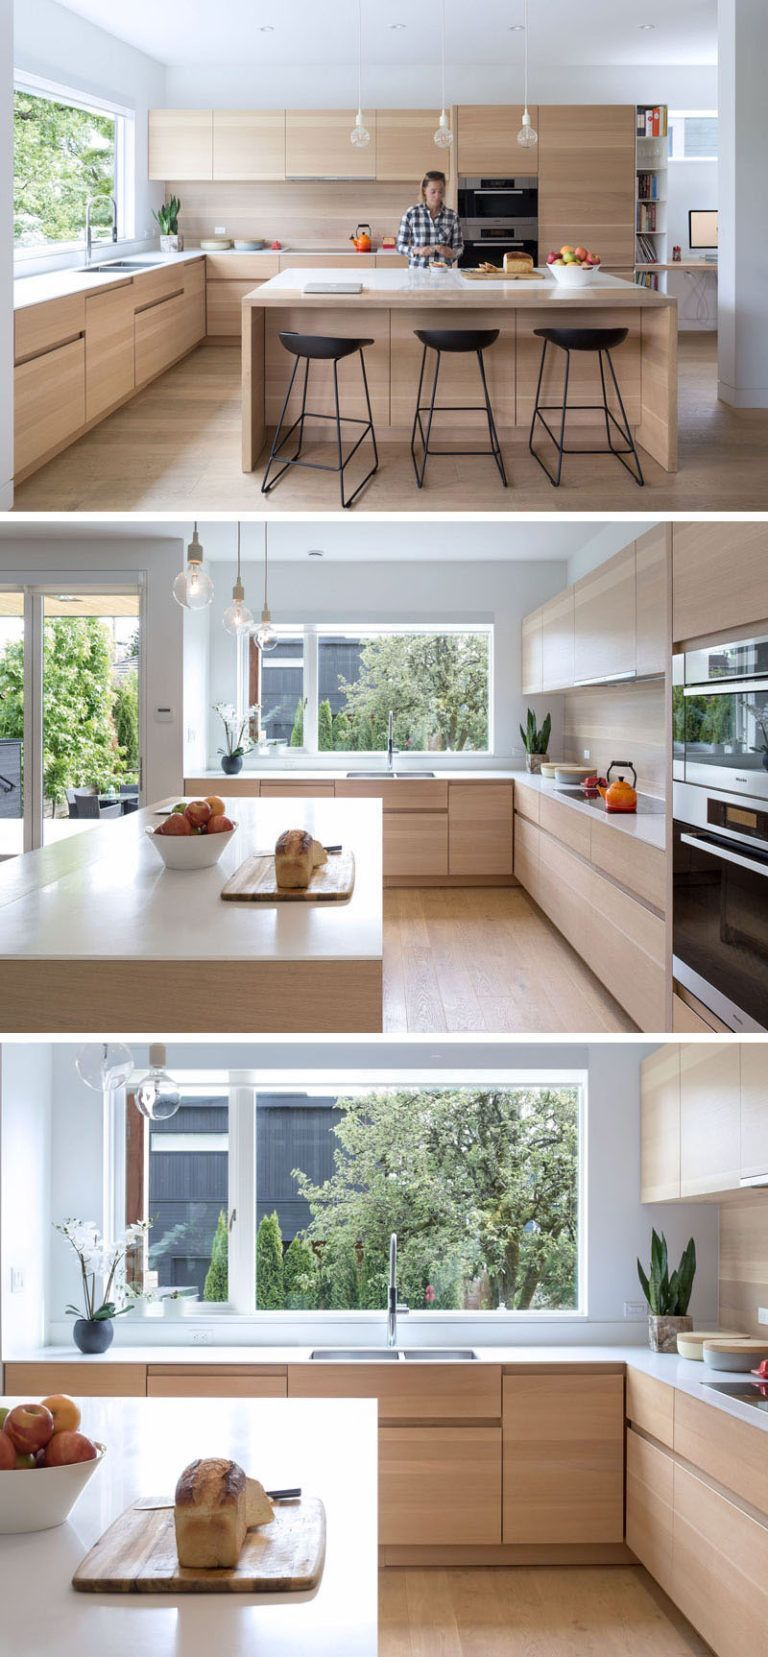 Photo of 20+Modern Kitchen Design Ideas You Need To Know About